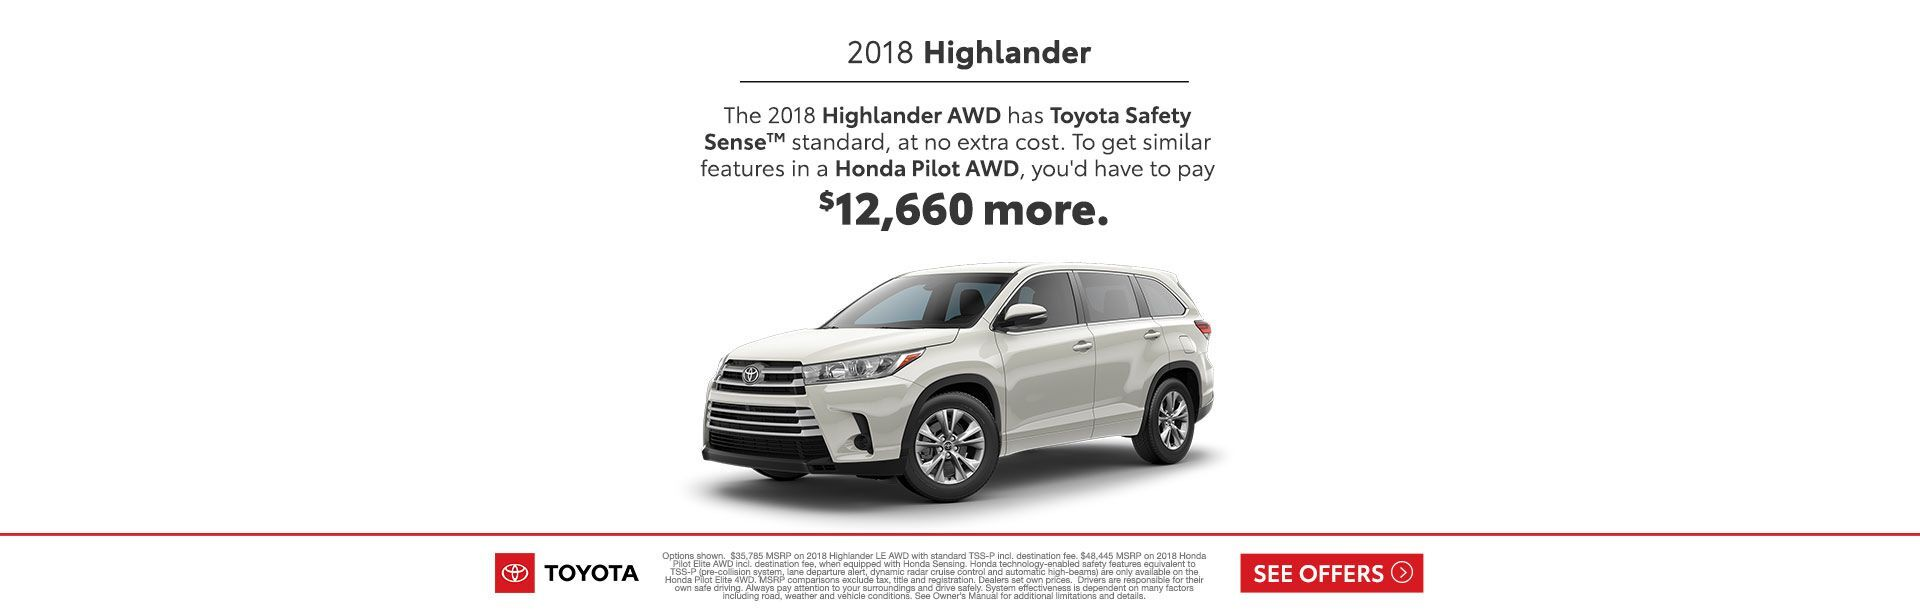 TSS Highlander Oct 2018